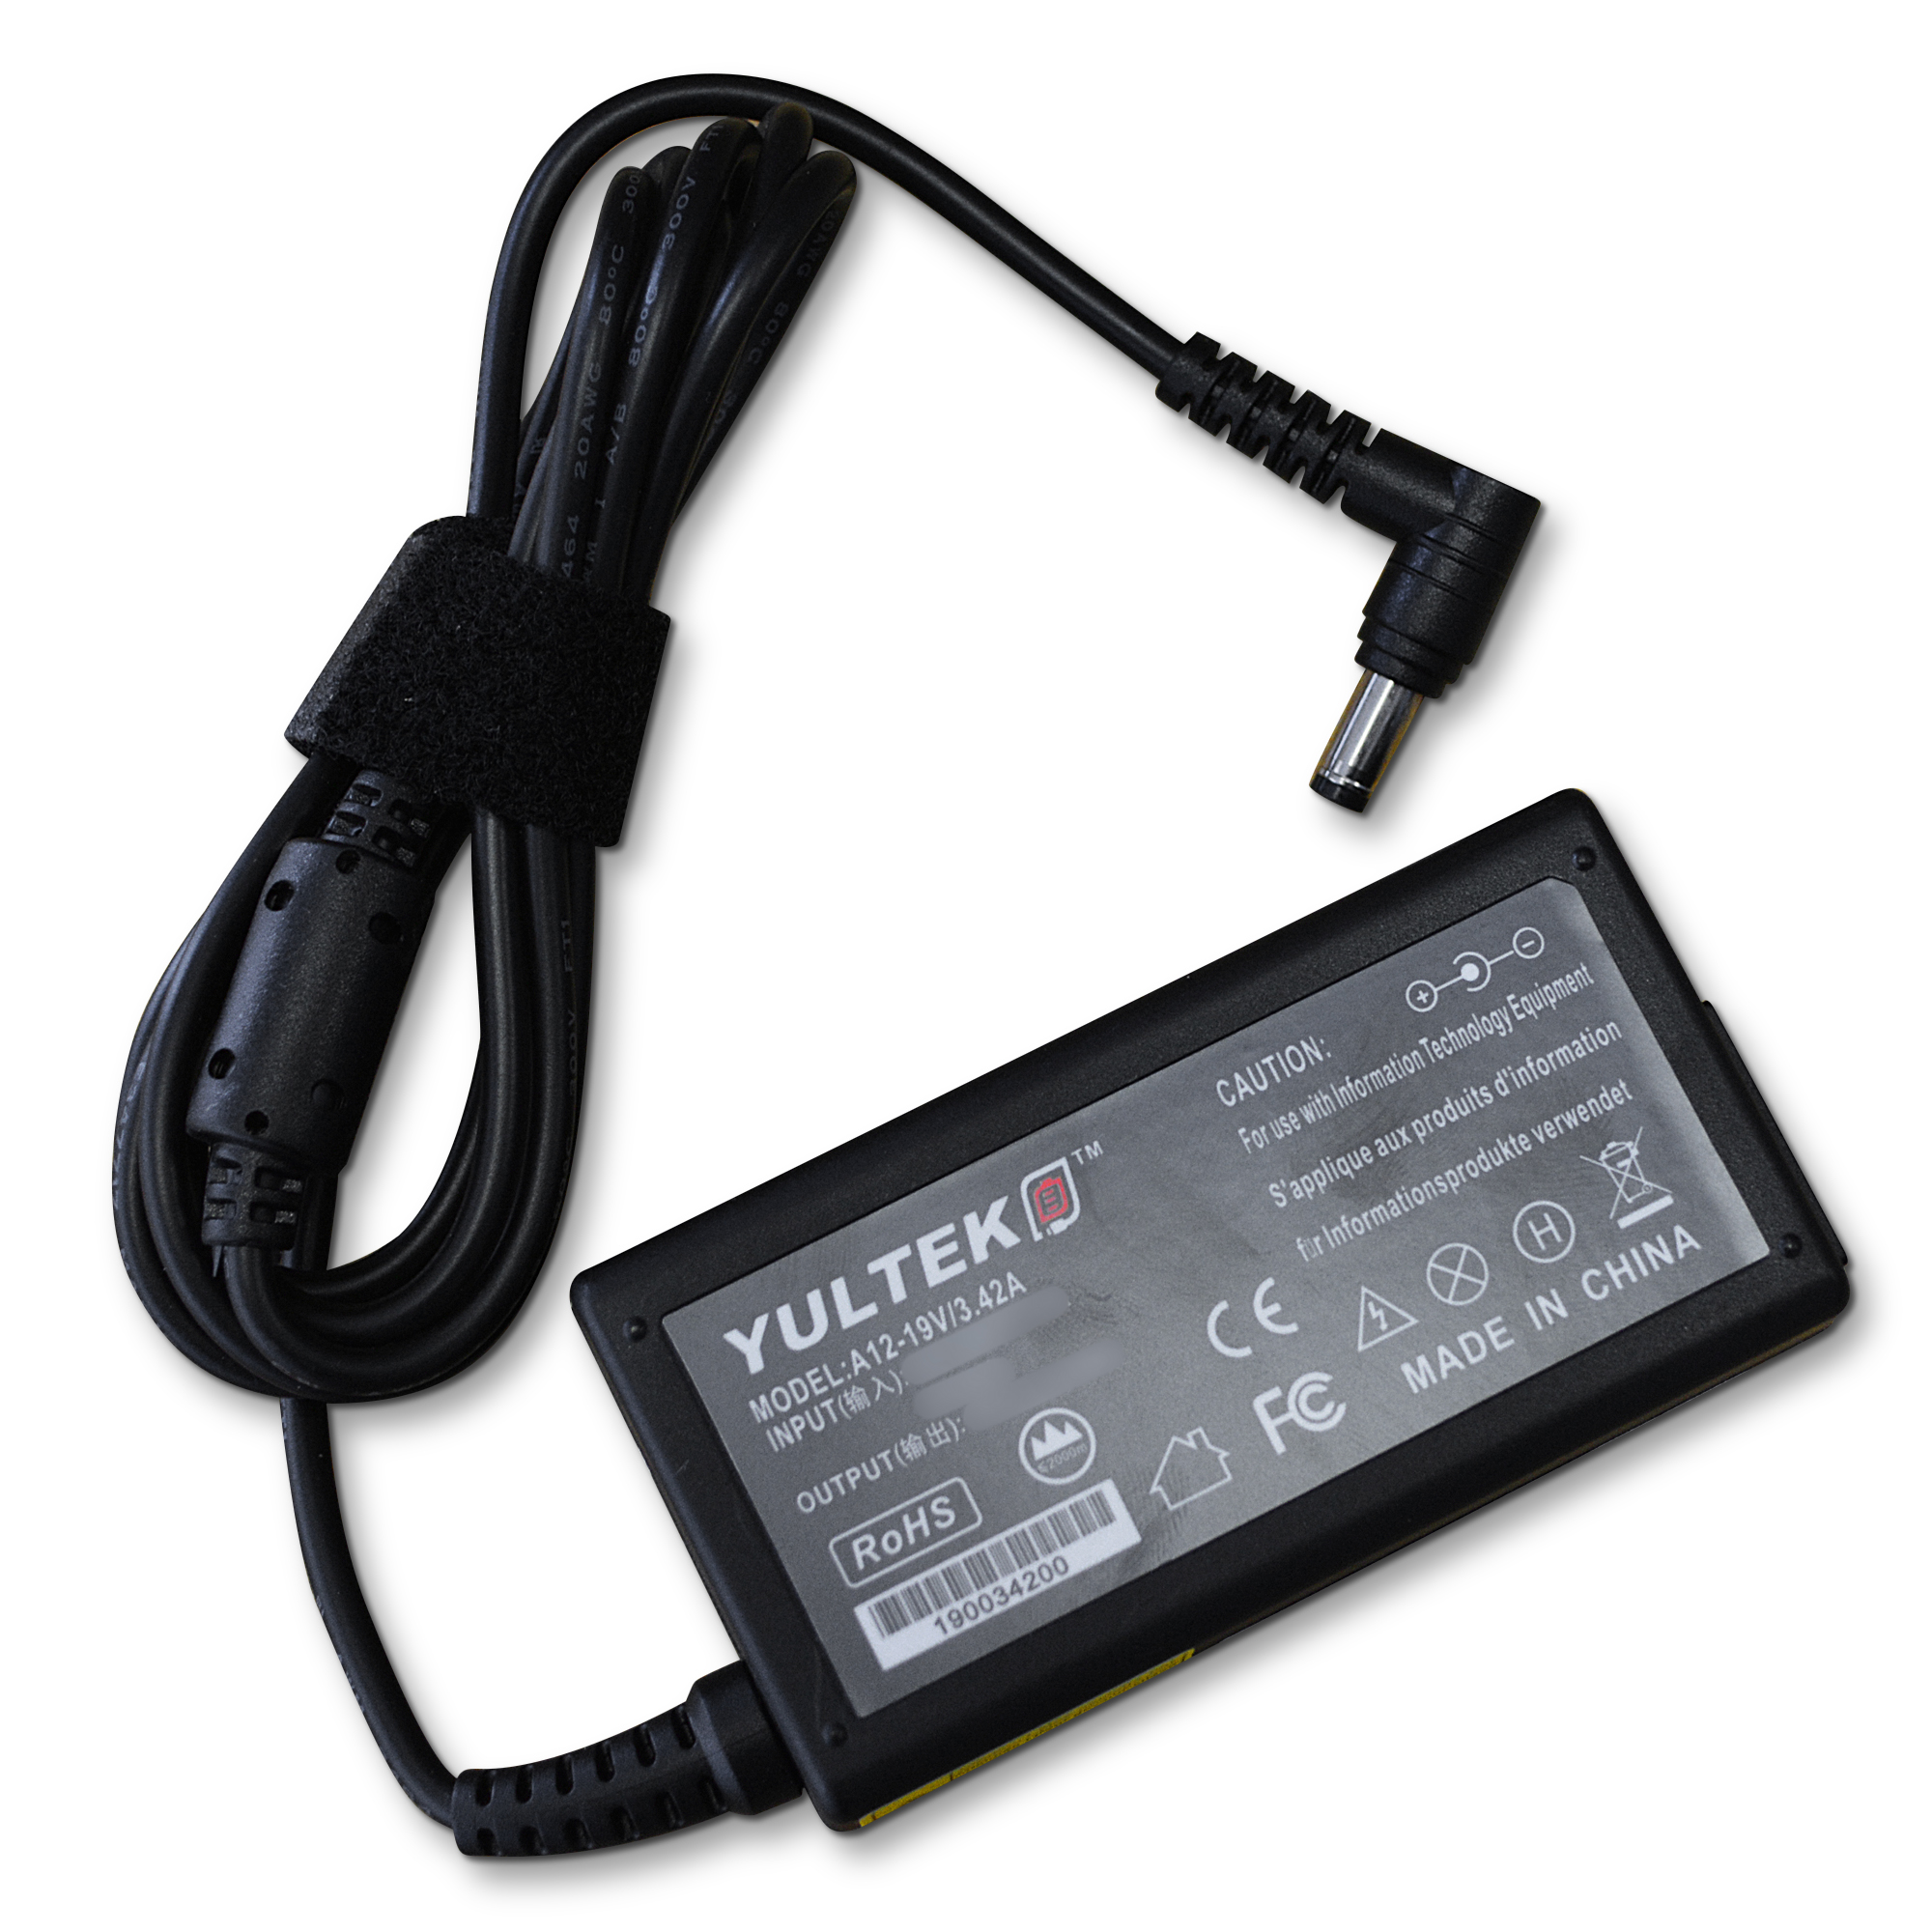 Fujitsu-Siemens Part Number FIU:12-01793-03 Laptop Charger